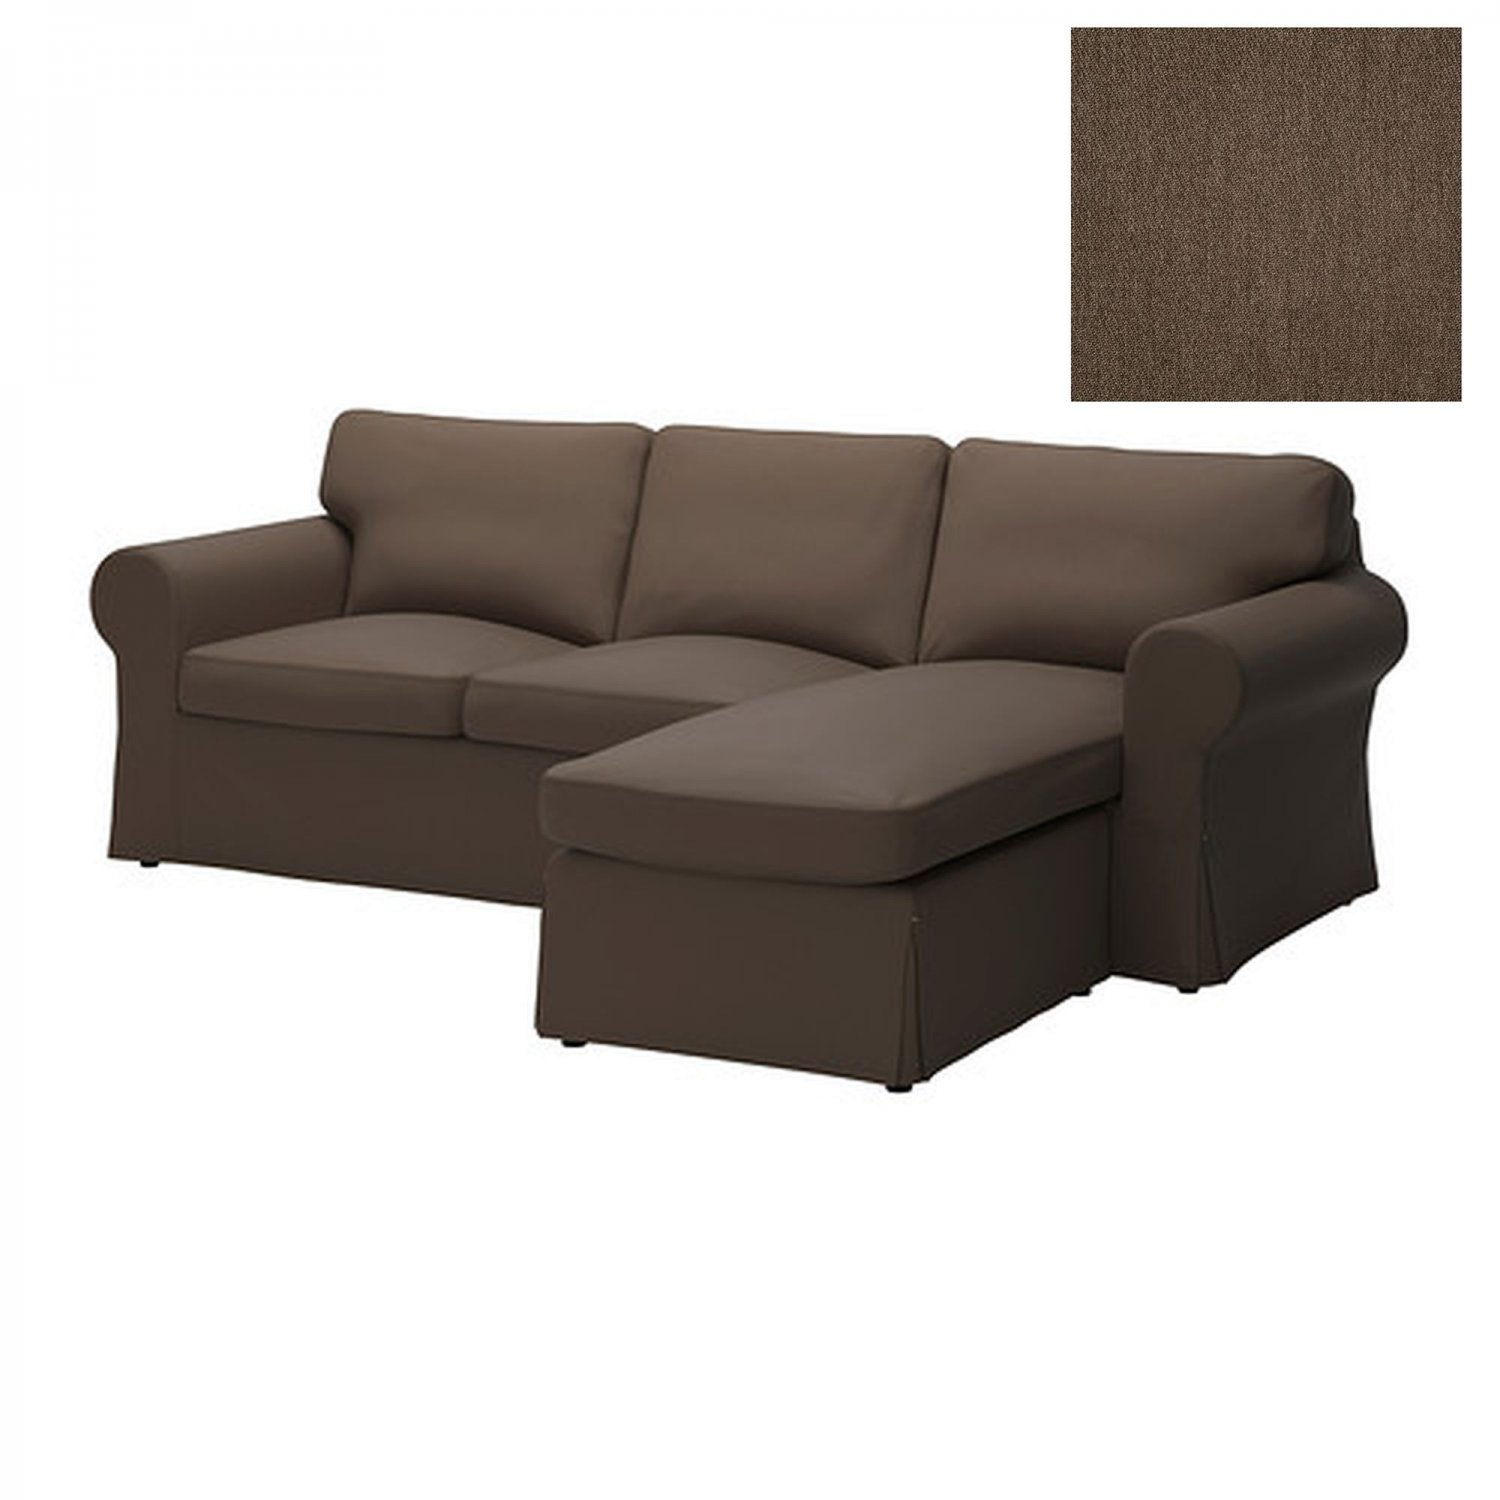 Ikea ektorp loveseat with chaise slipcover 2 seat sofa w chaise cover jonsboda brown Loveseat slip cover